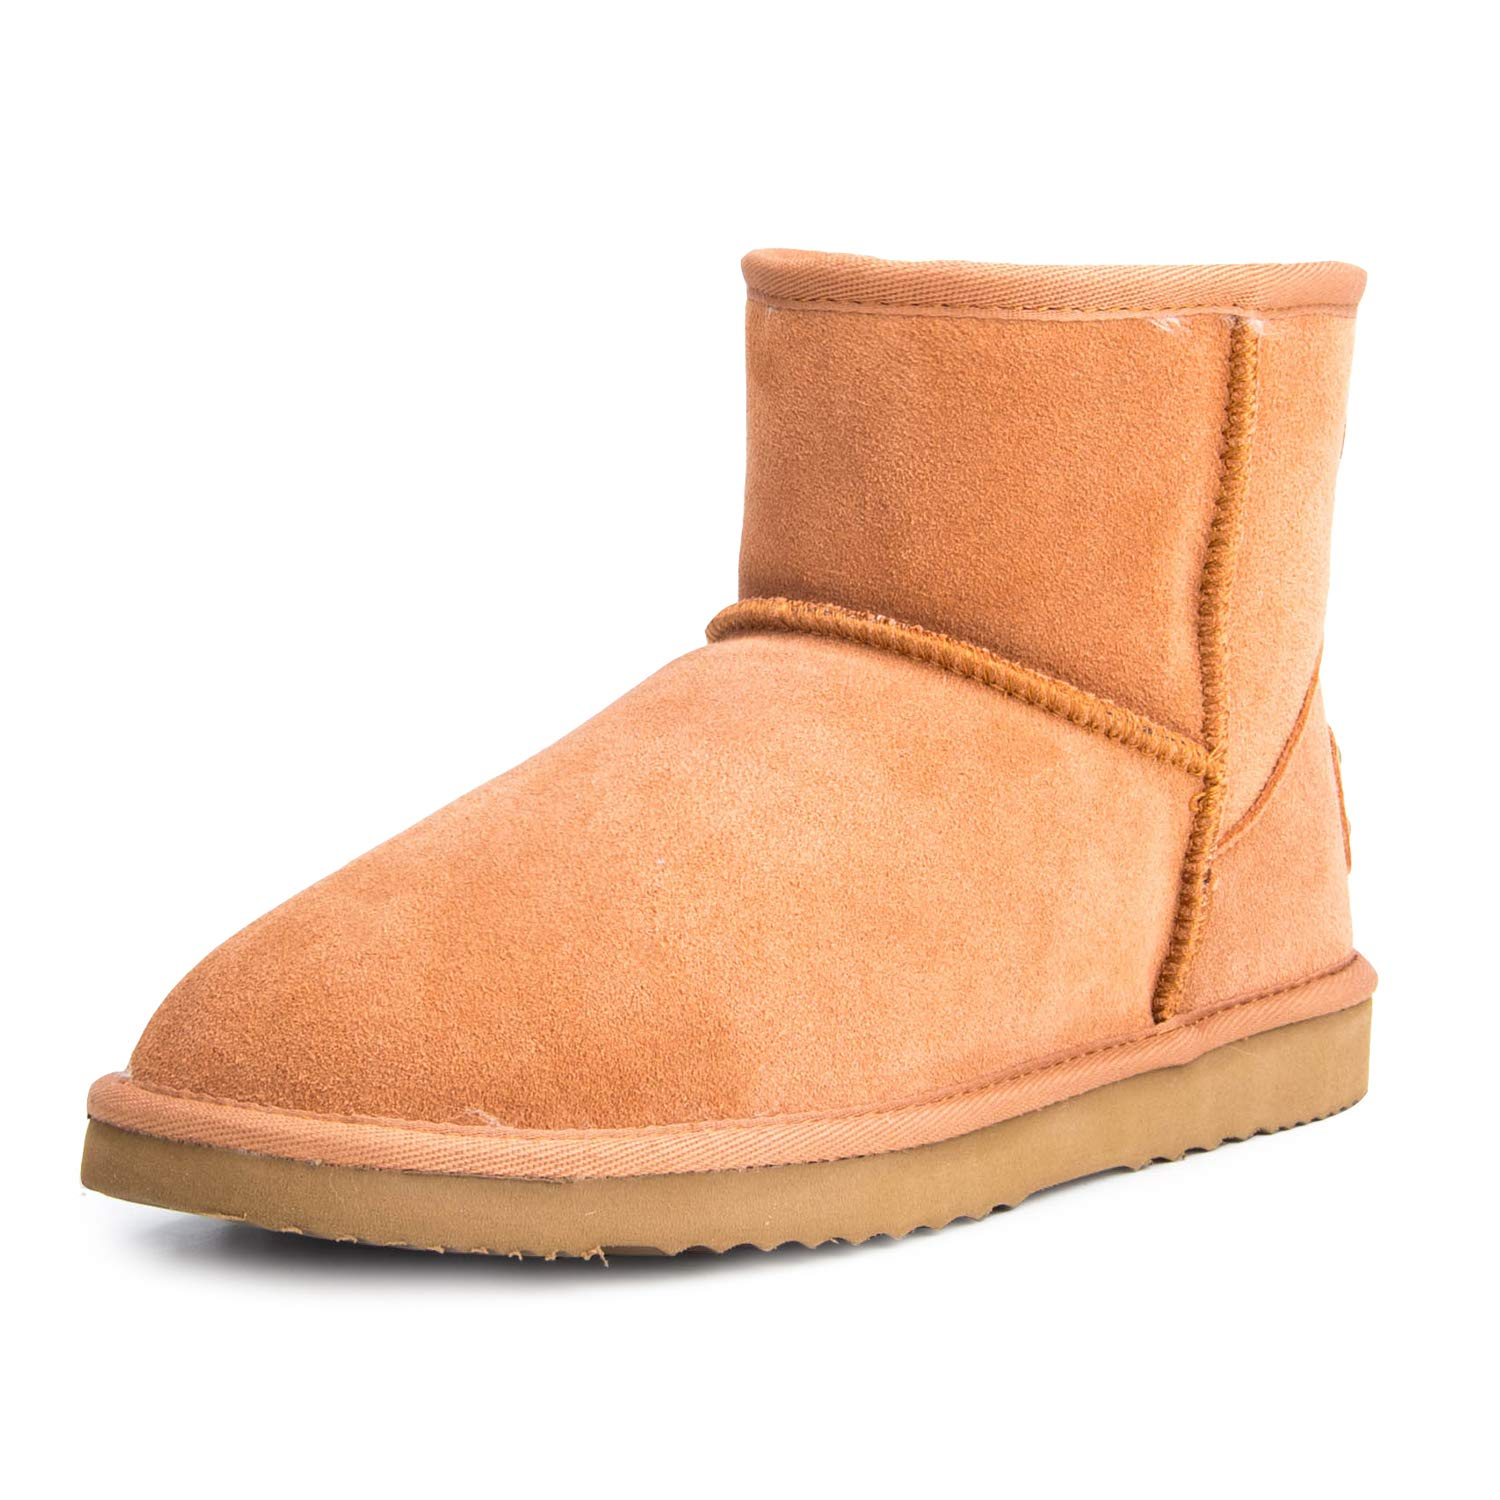 Chestnut(f54) Ausland--Women's Half Snow Boots, with Water-Resistant Vamp, Thick Fur Lining and Lightweight Rubber Sole